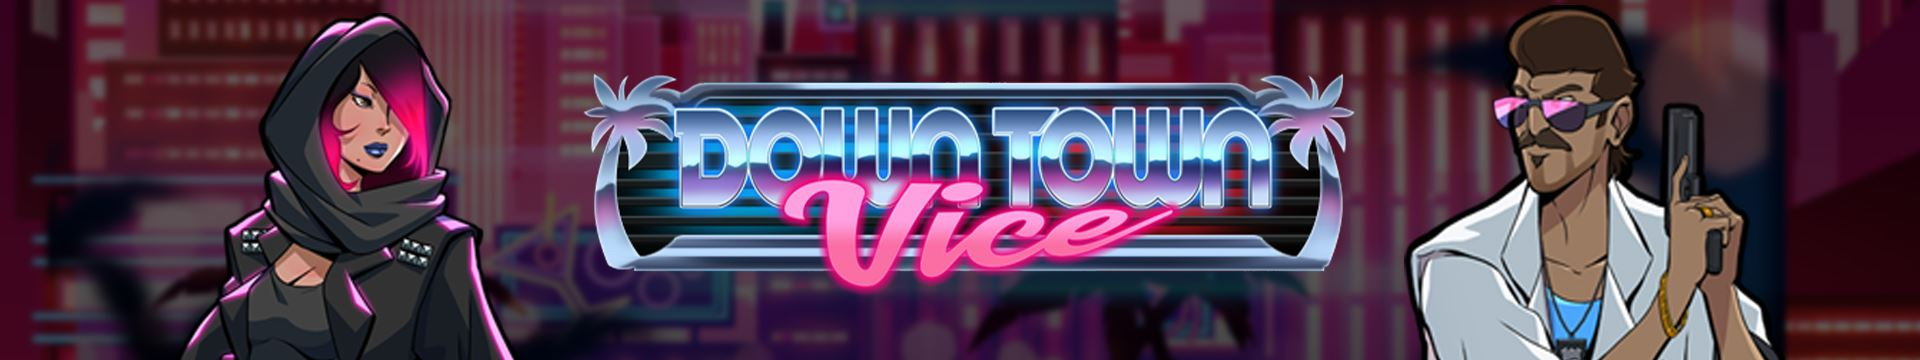 Downtown_Vice